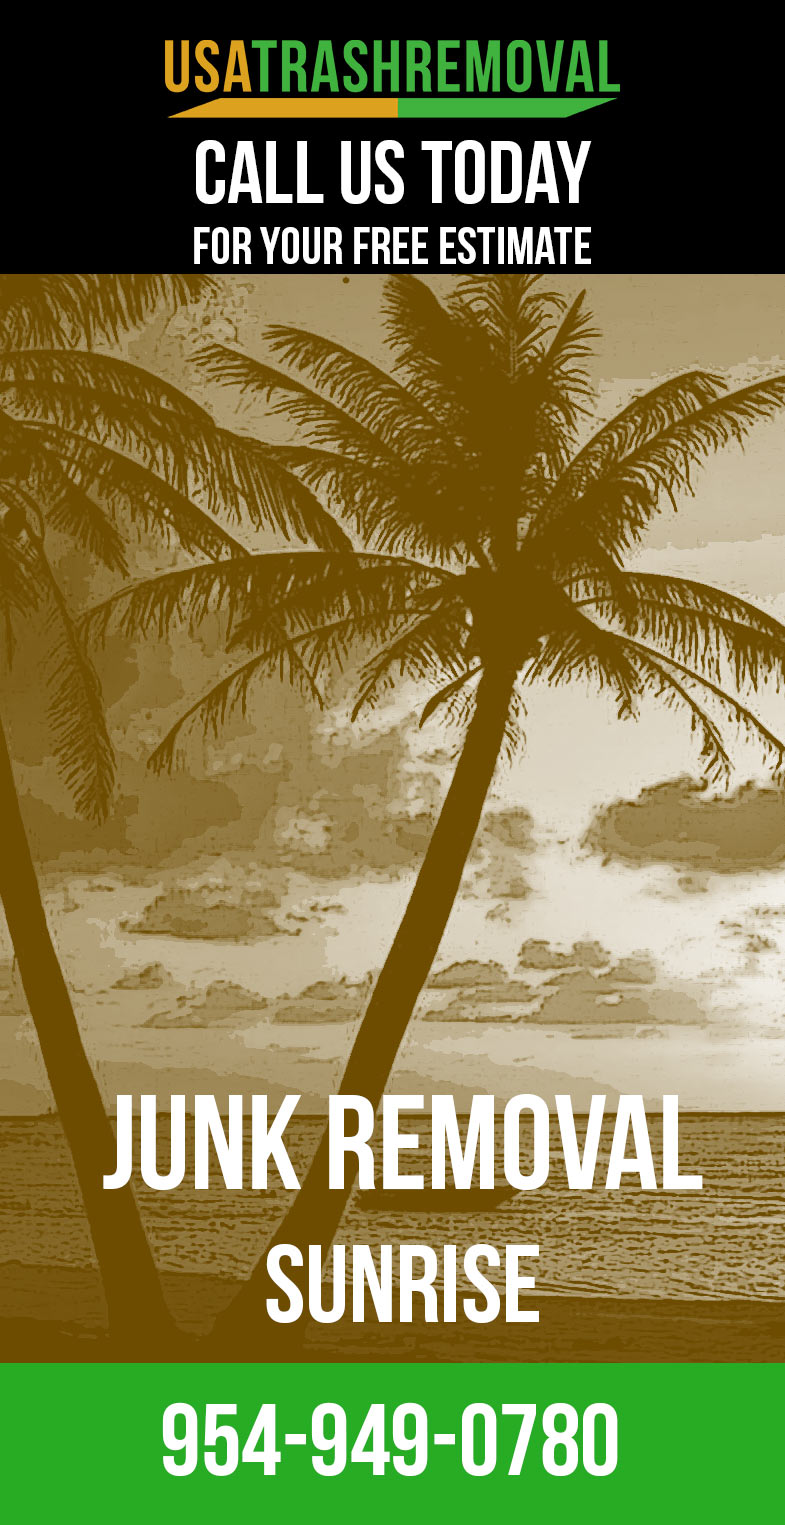 Junk Removal Sunrise